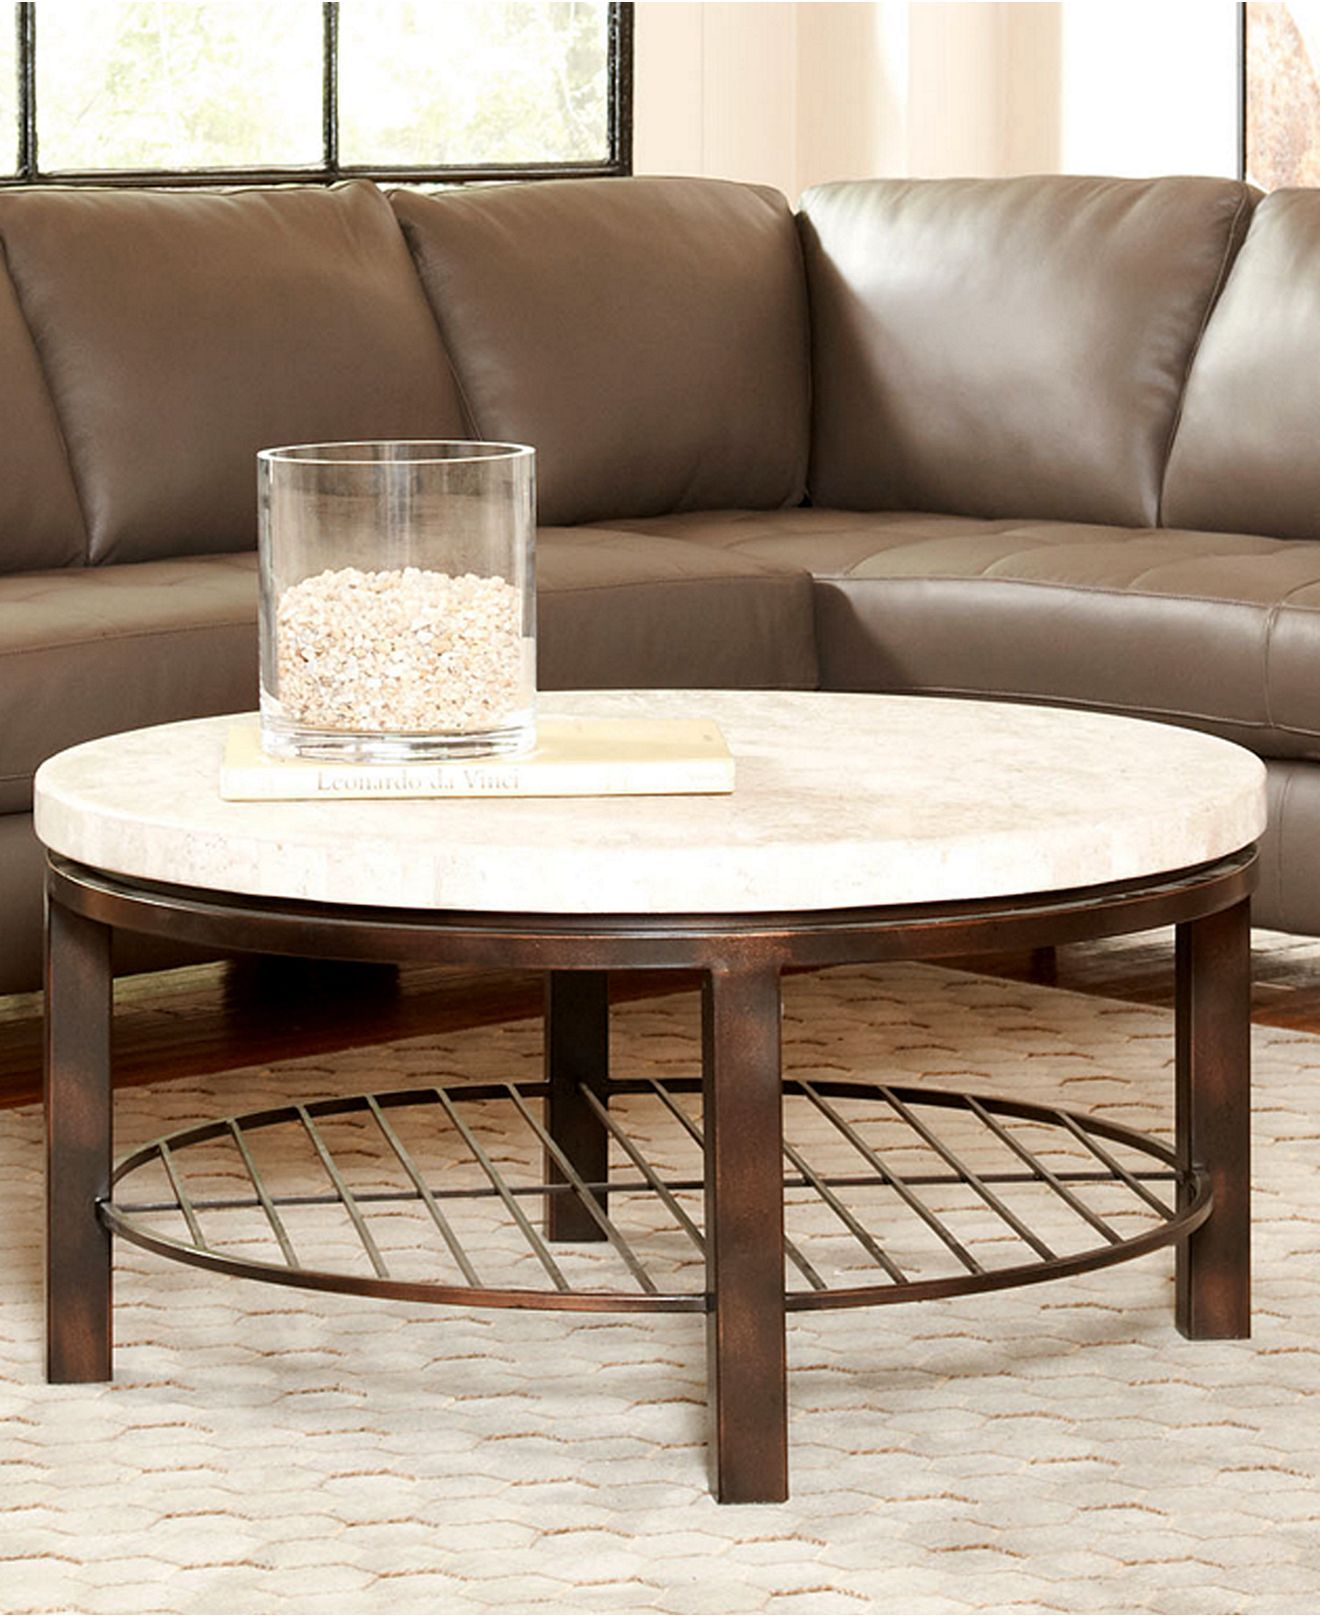 Tempo Travertine Table Collection Round Travertine Table